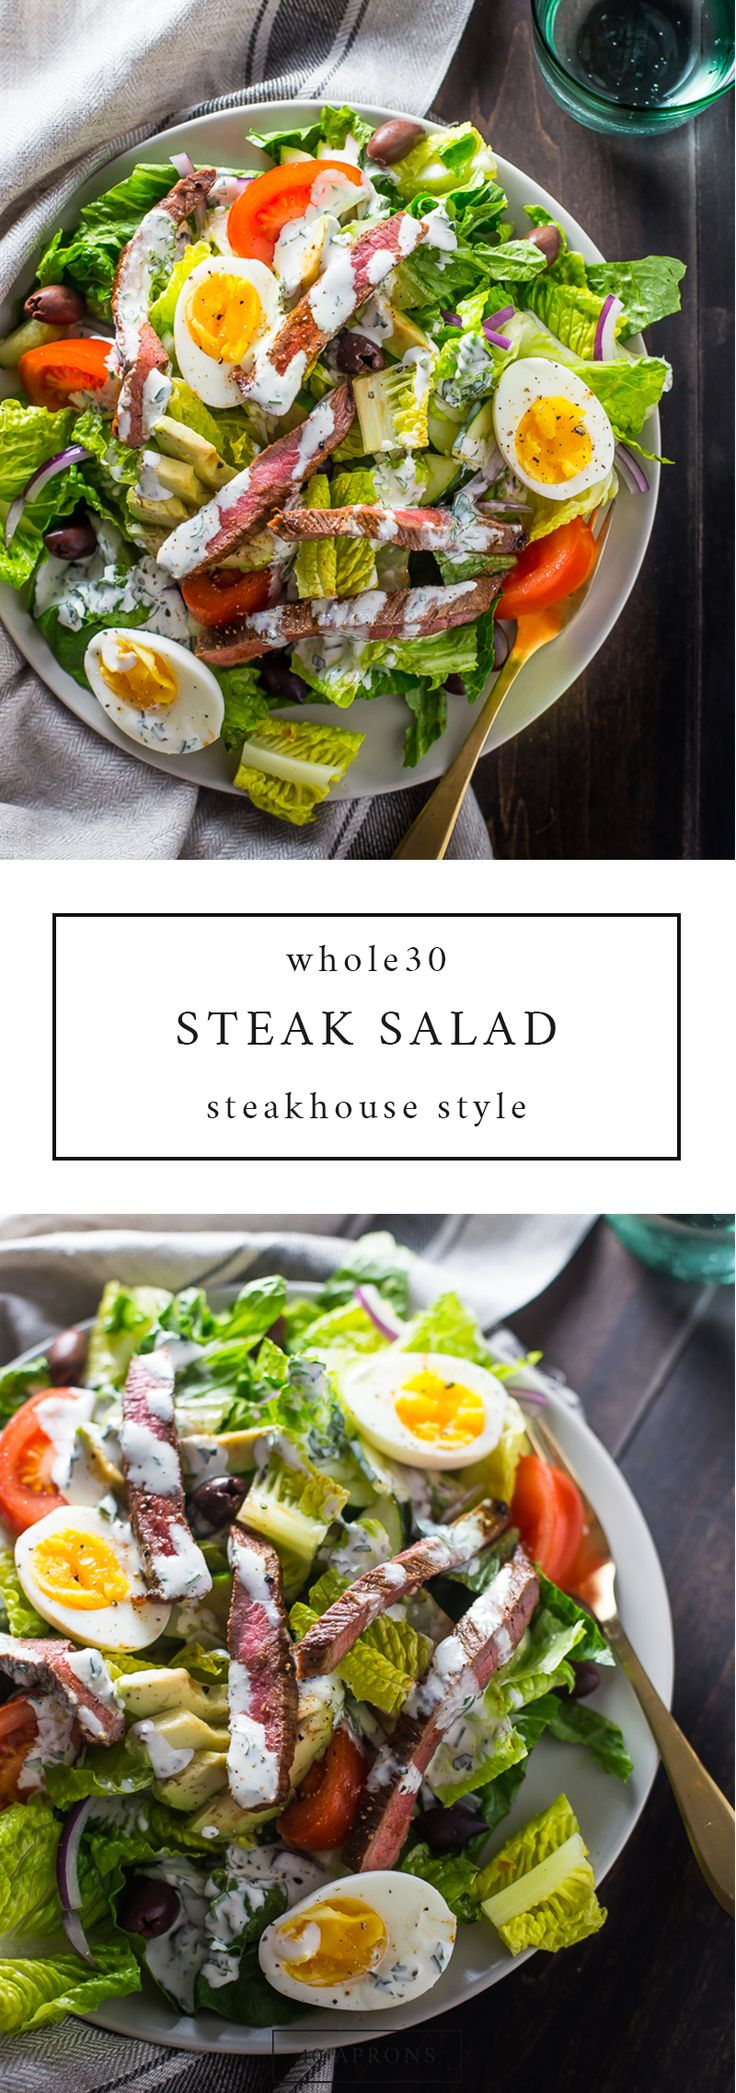 Whole30 Steak Salad Steakhouse Style. This Whole30 salad is stacked with protein and flavor, and you'll keep this in your paleo salad rotation!